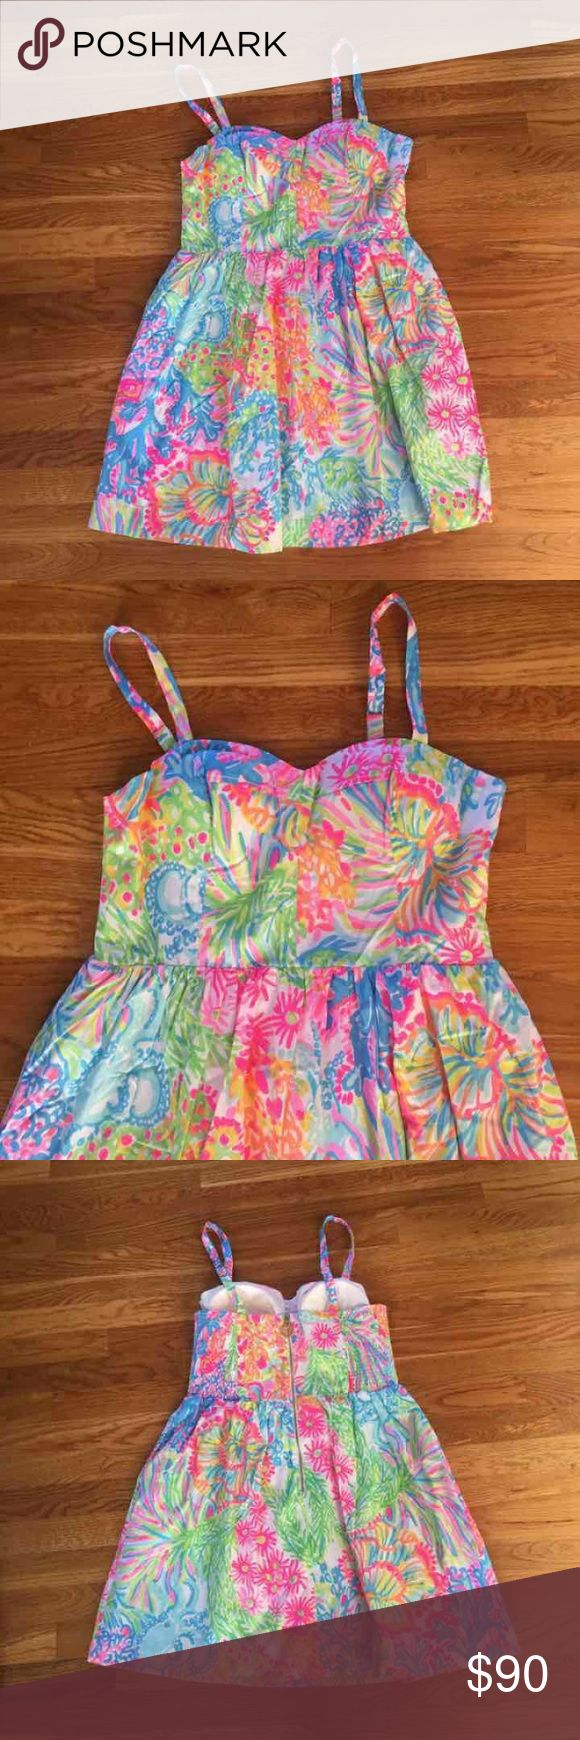 ❗️SALE❗️$178 Lilly pulitzer dress sz 10 New with tags $178 Lilly pulitzer arsleigh dress I lovers coral sz 10// brand new, perfect condition, never worn before. Lilly Pulitzer Dresses